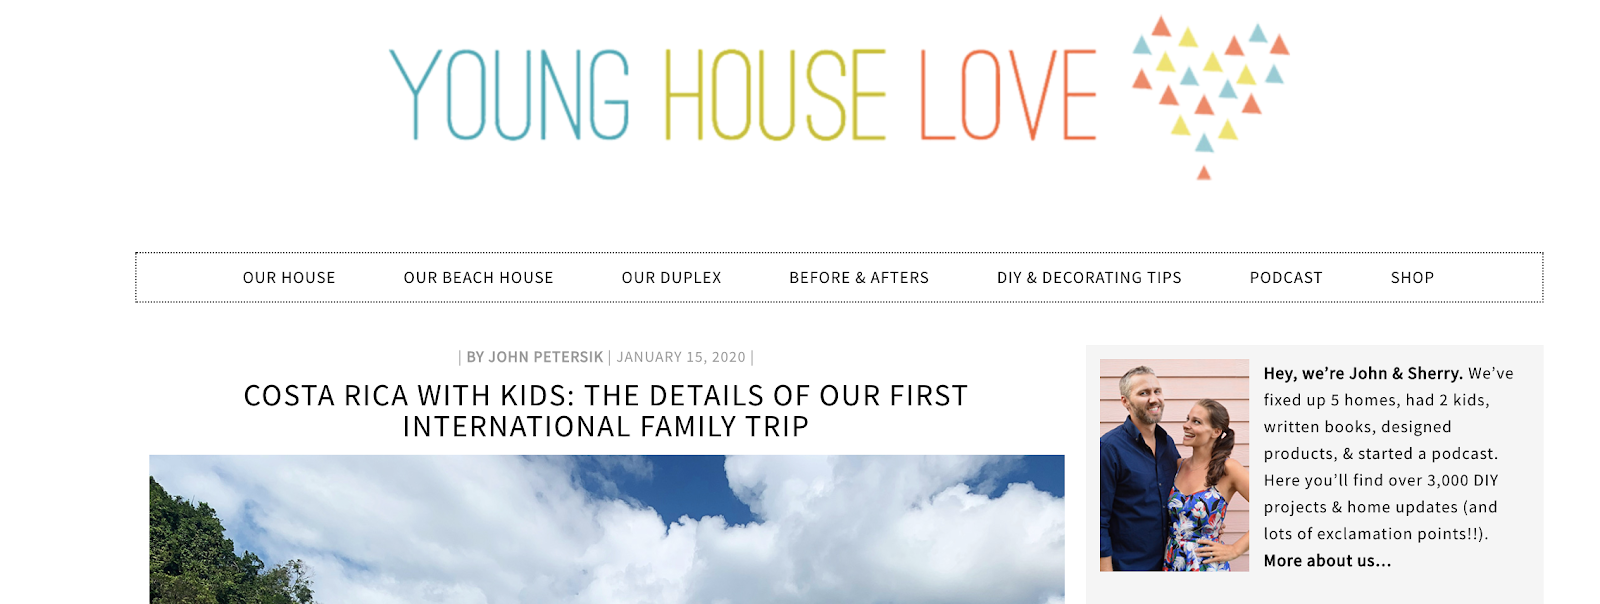 Young House Love Homepage and Blog Niche Example